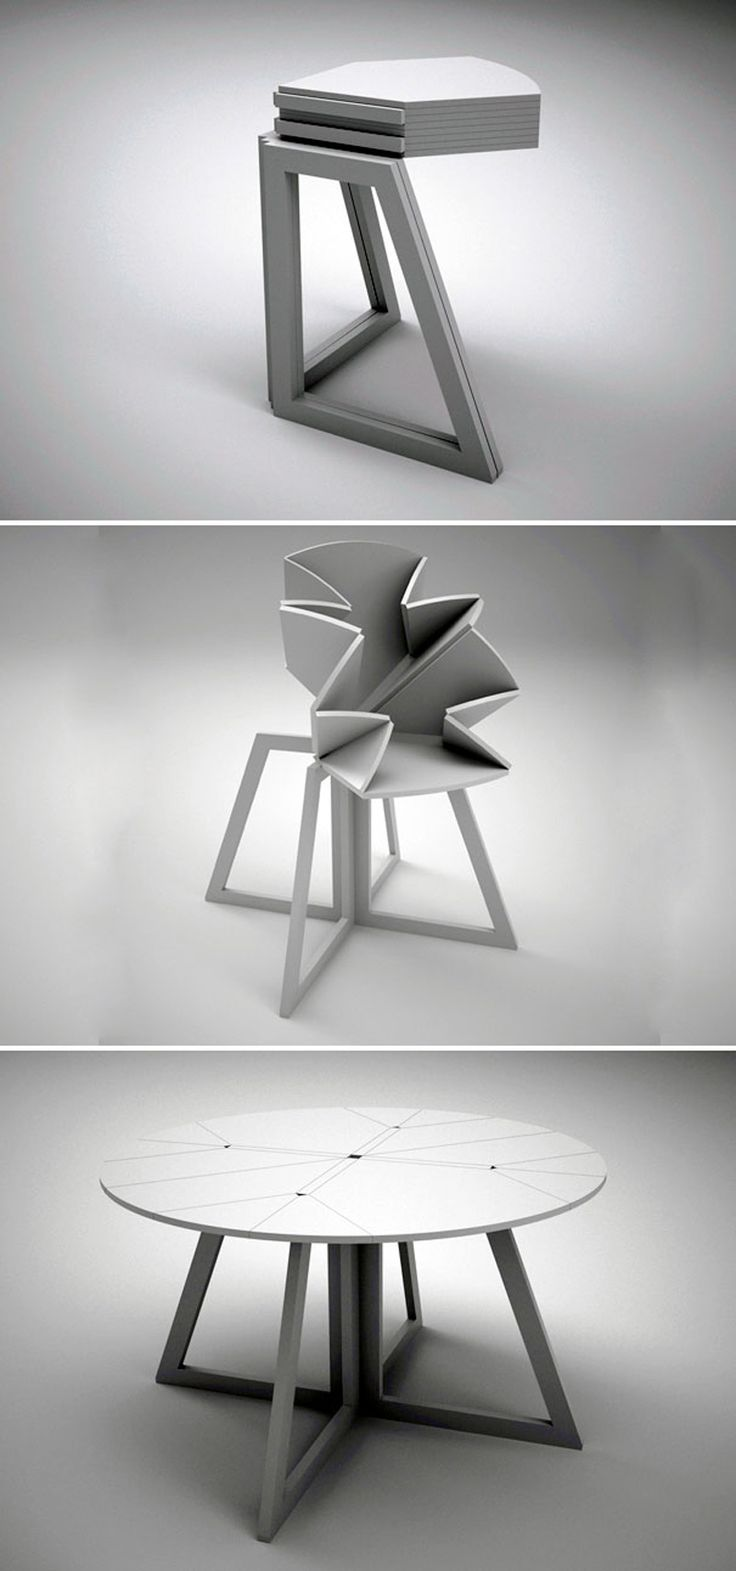 30 Amazing Extending and Folding Tables! (video)   http://www.designrulz.com/design/2015/01/30-amazing-extending-folding-tables-video/